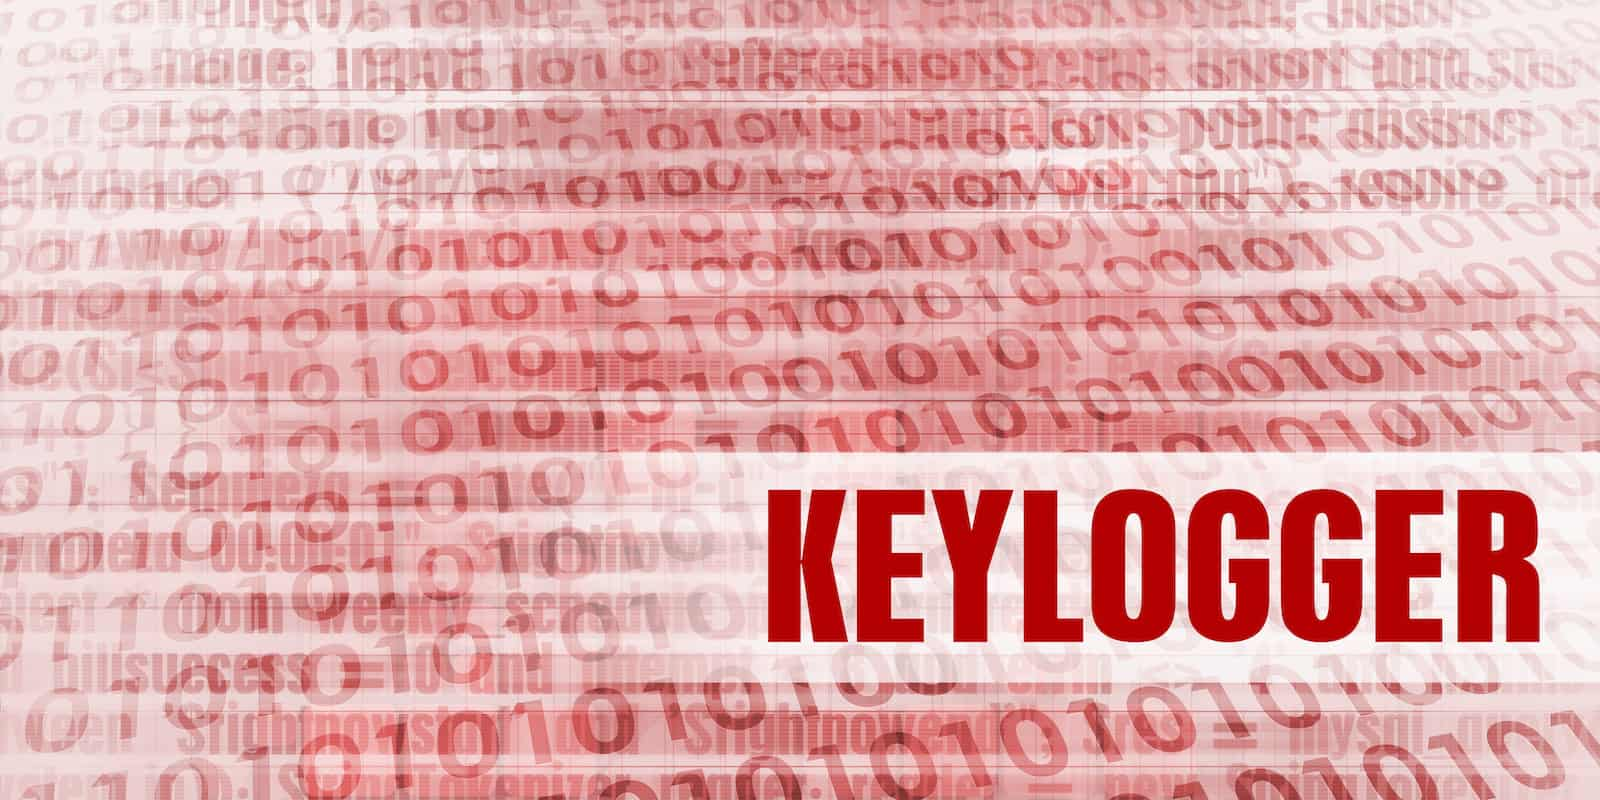 Can antivirus detect keyloggers?